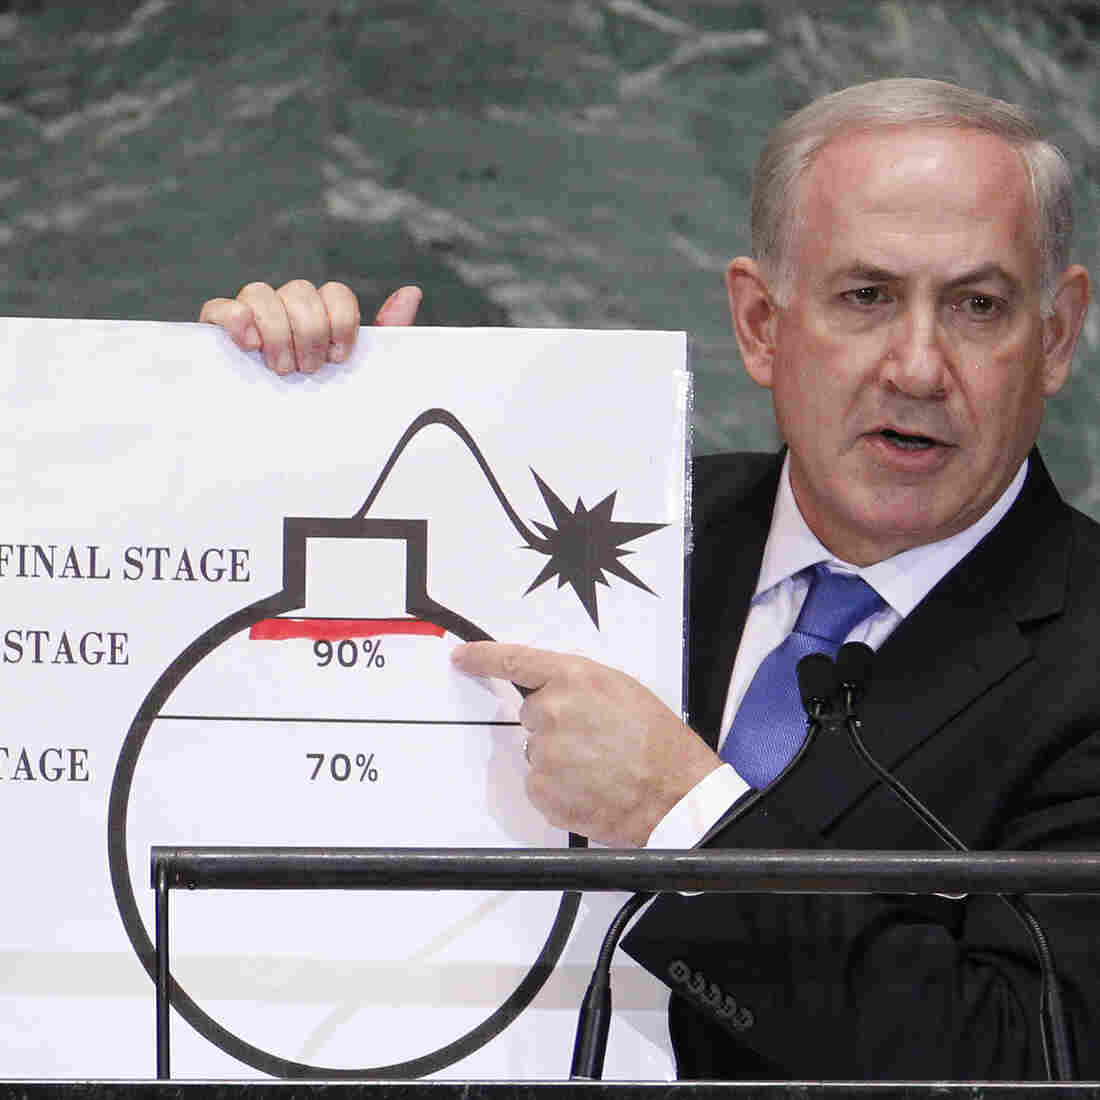 Netanyahu Calls For 'Red Line' On Iran; Rejects Palestinian's 'Libelous' Charges